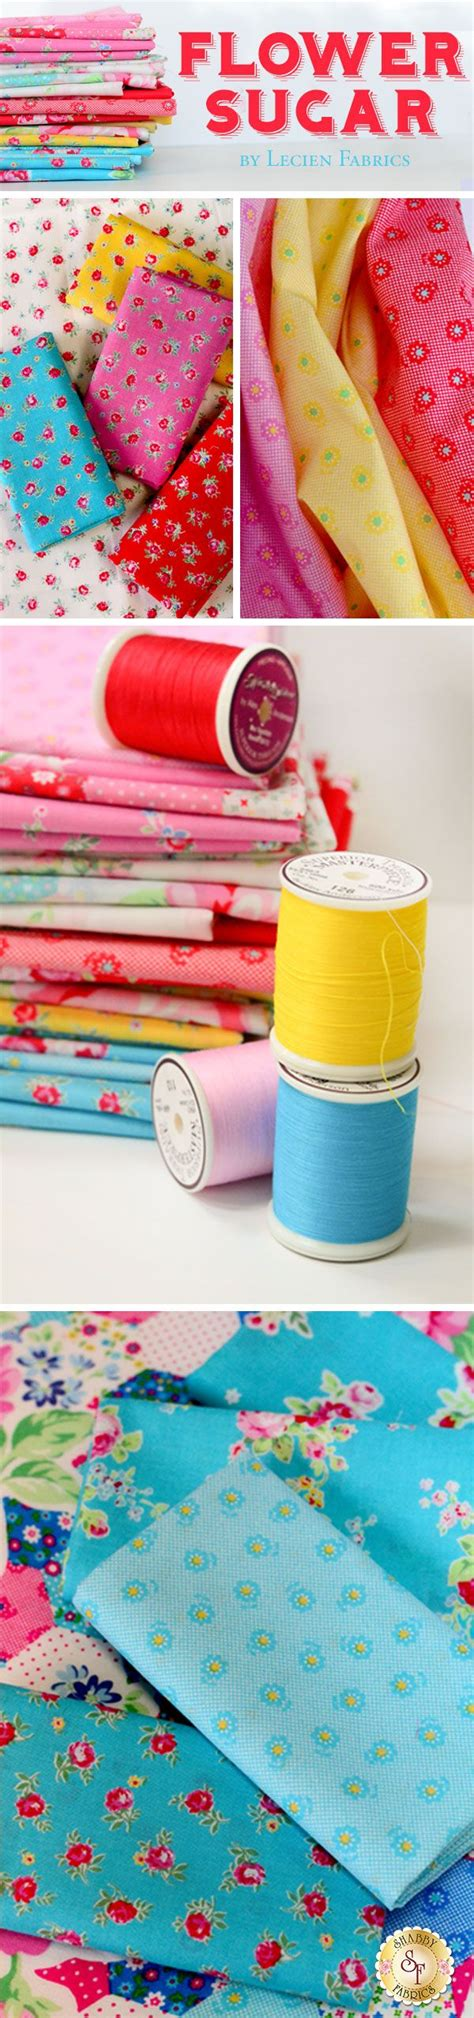 shabby fabrics lecien 62 best images about lecien fabrics on pinterest fat quarters shabby and rococo